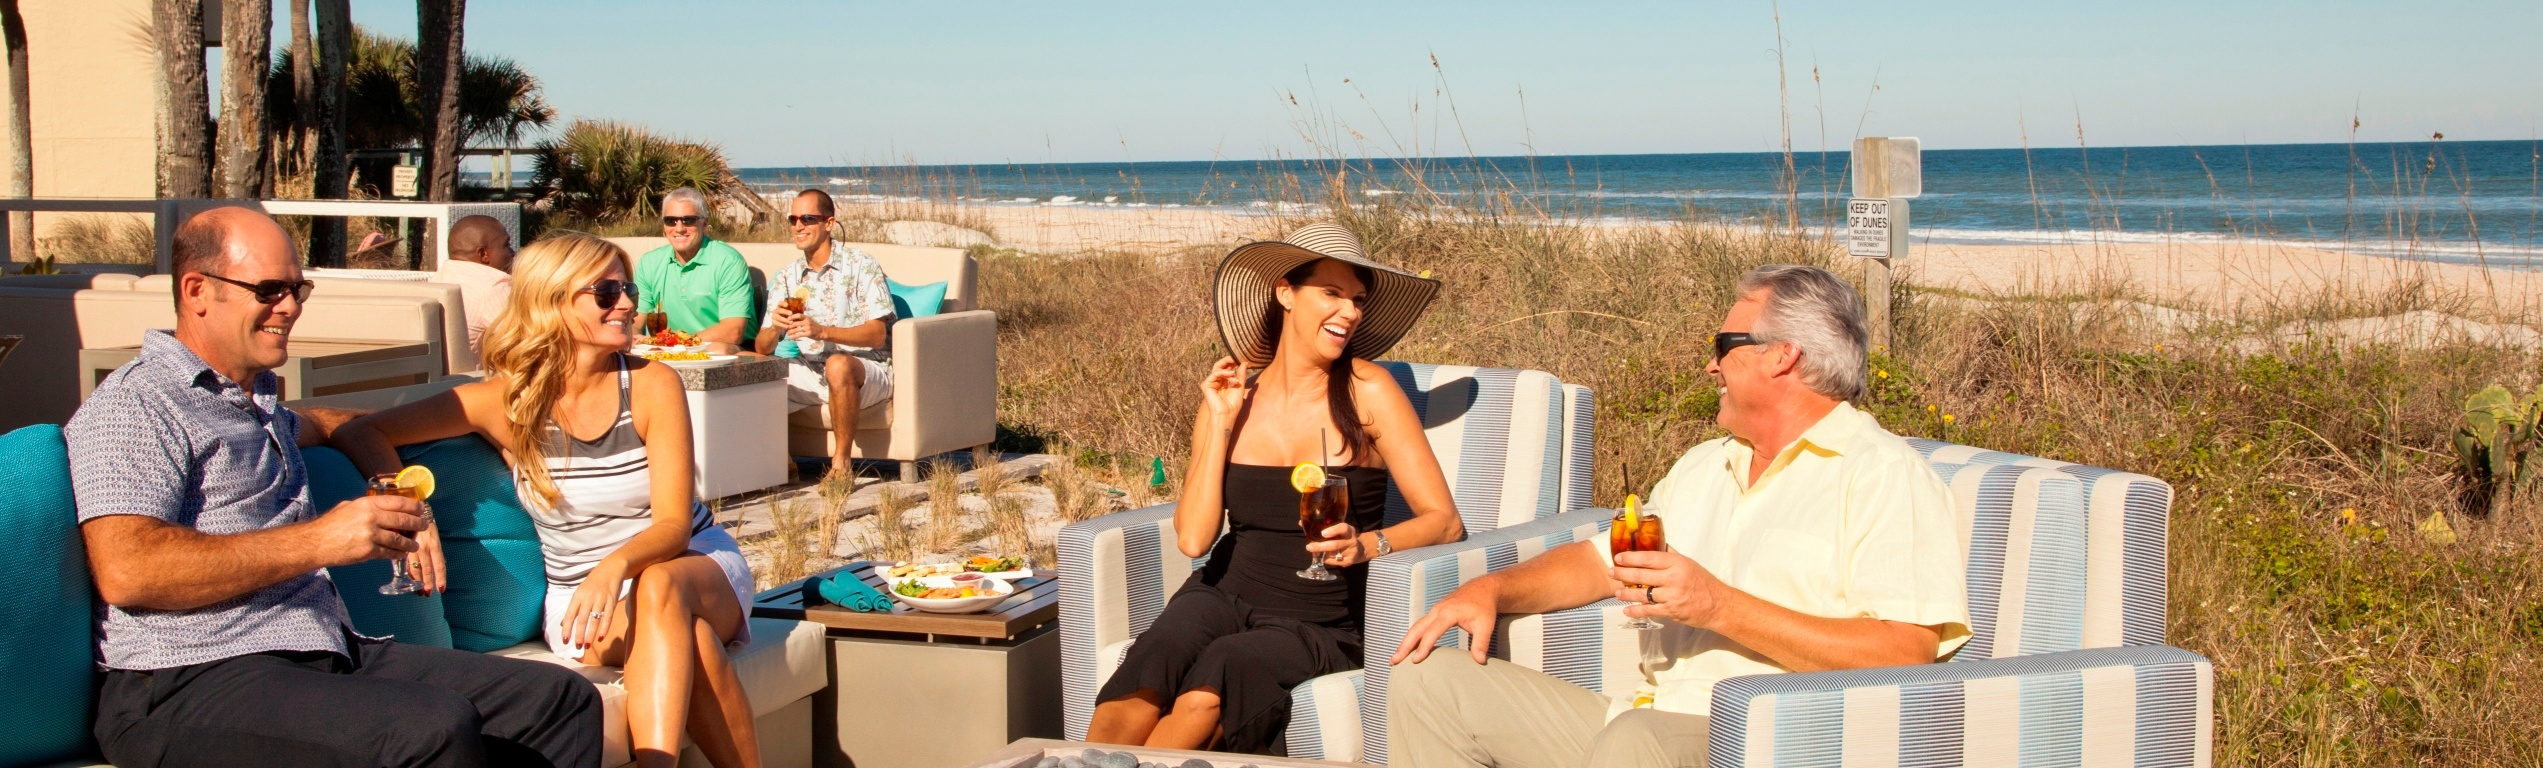 Cabana Beach Club Dining in Ponte Vedra Beach